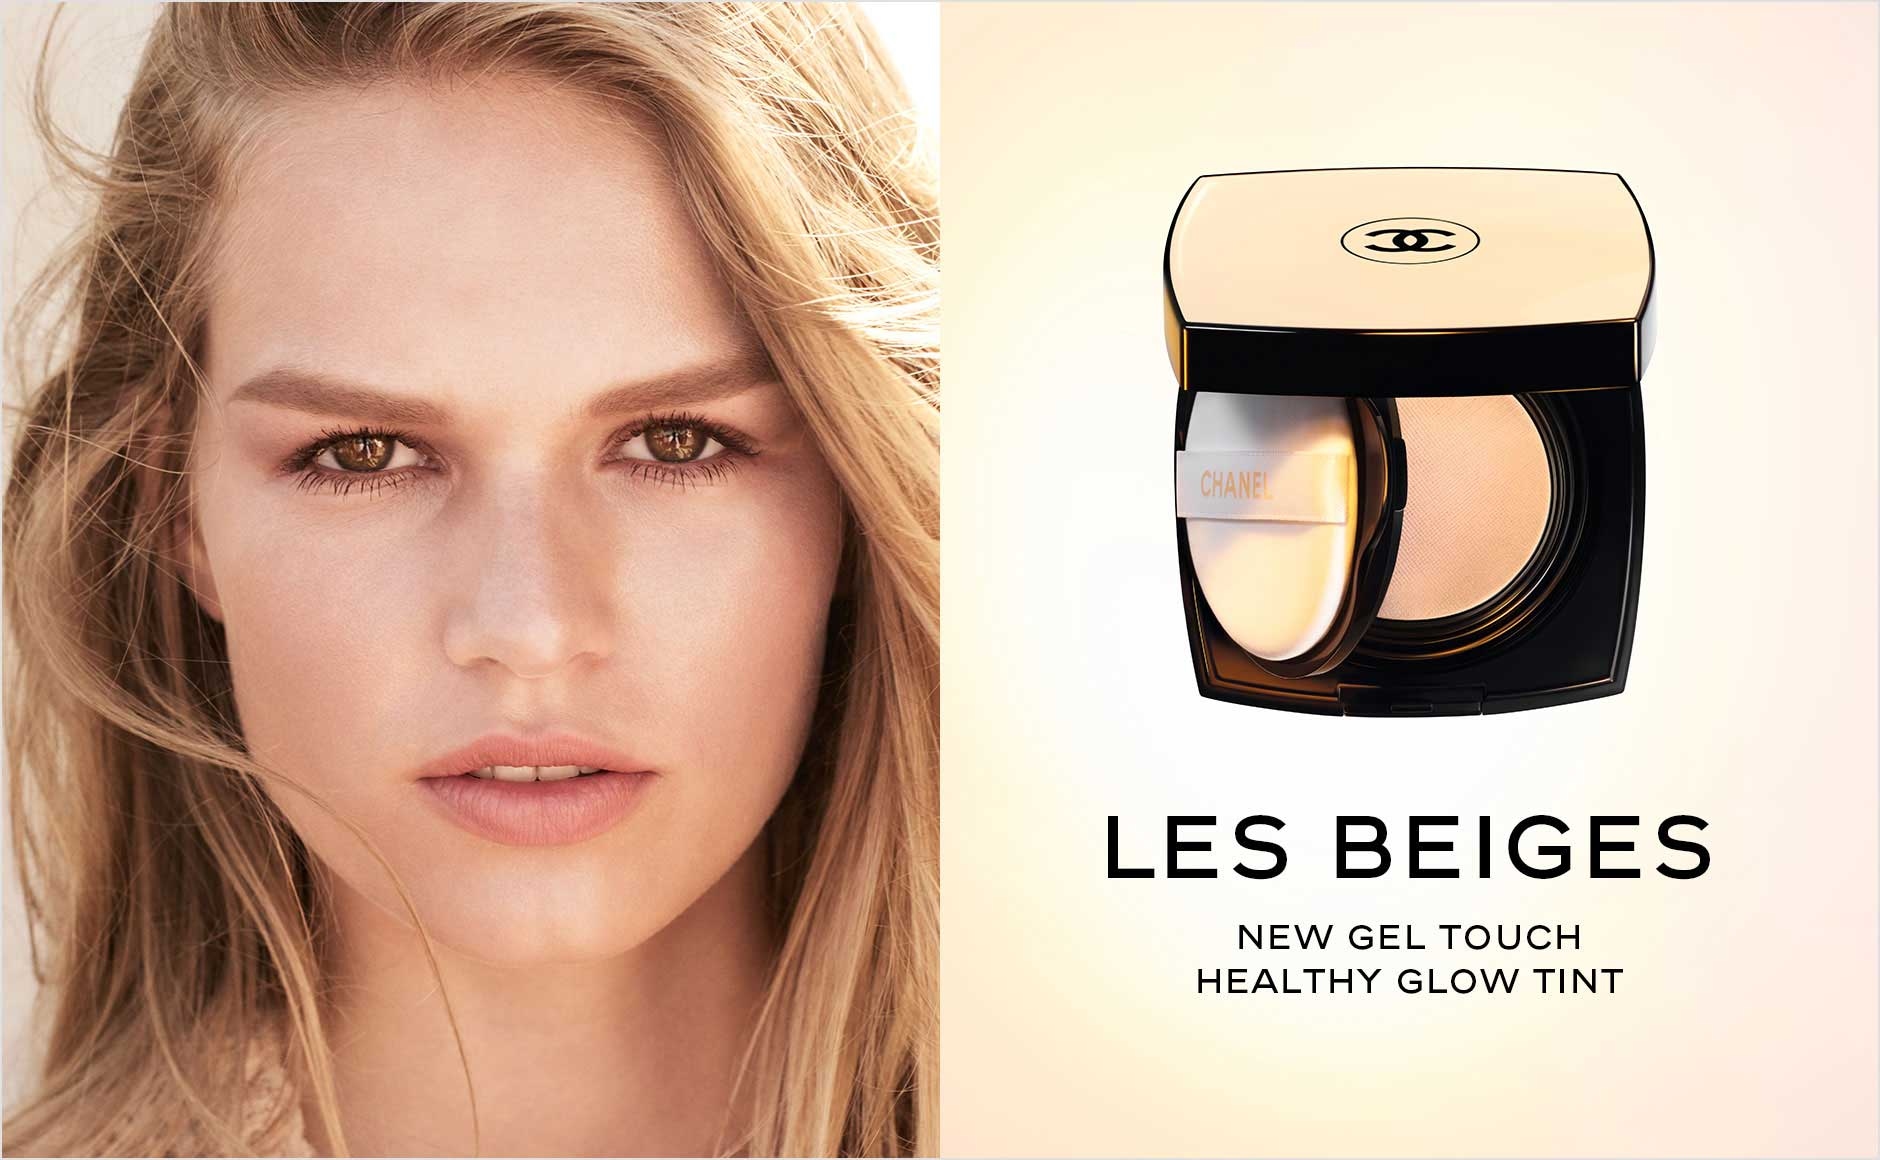 Les Beiges - New gel touch healthy glow tint